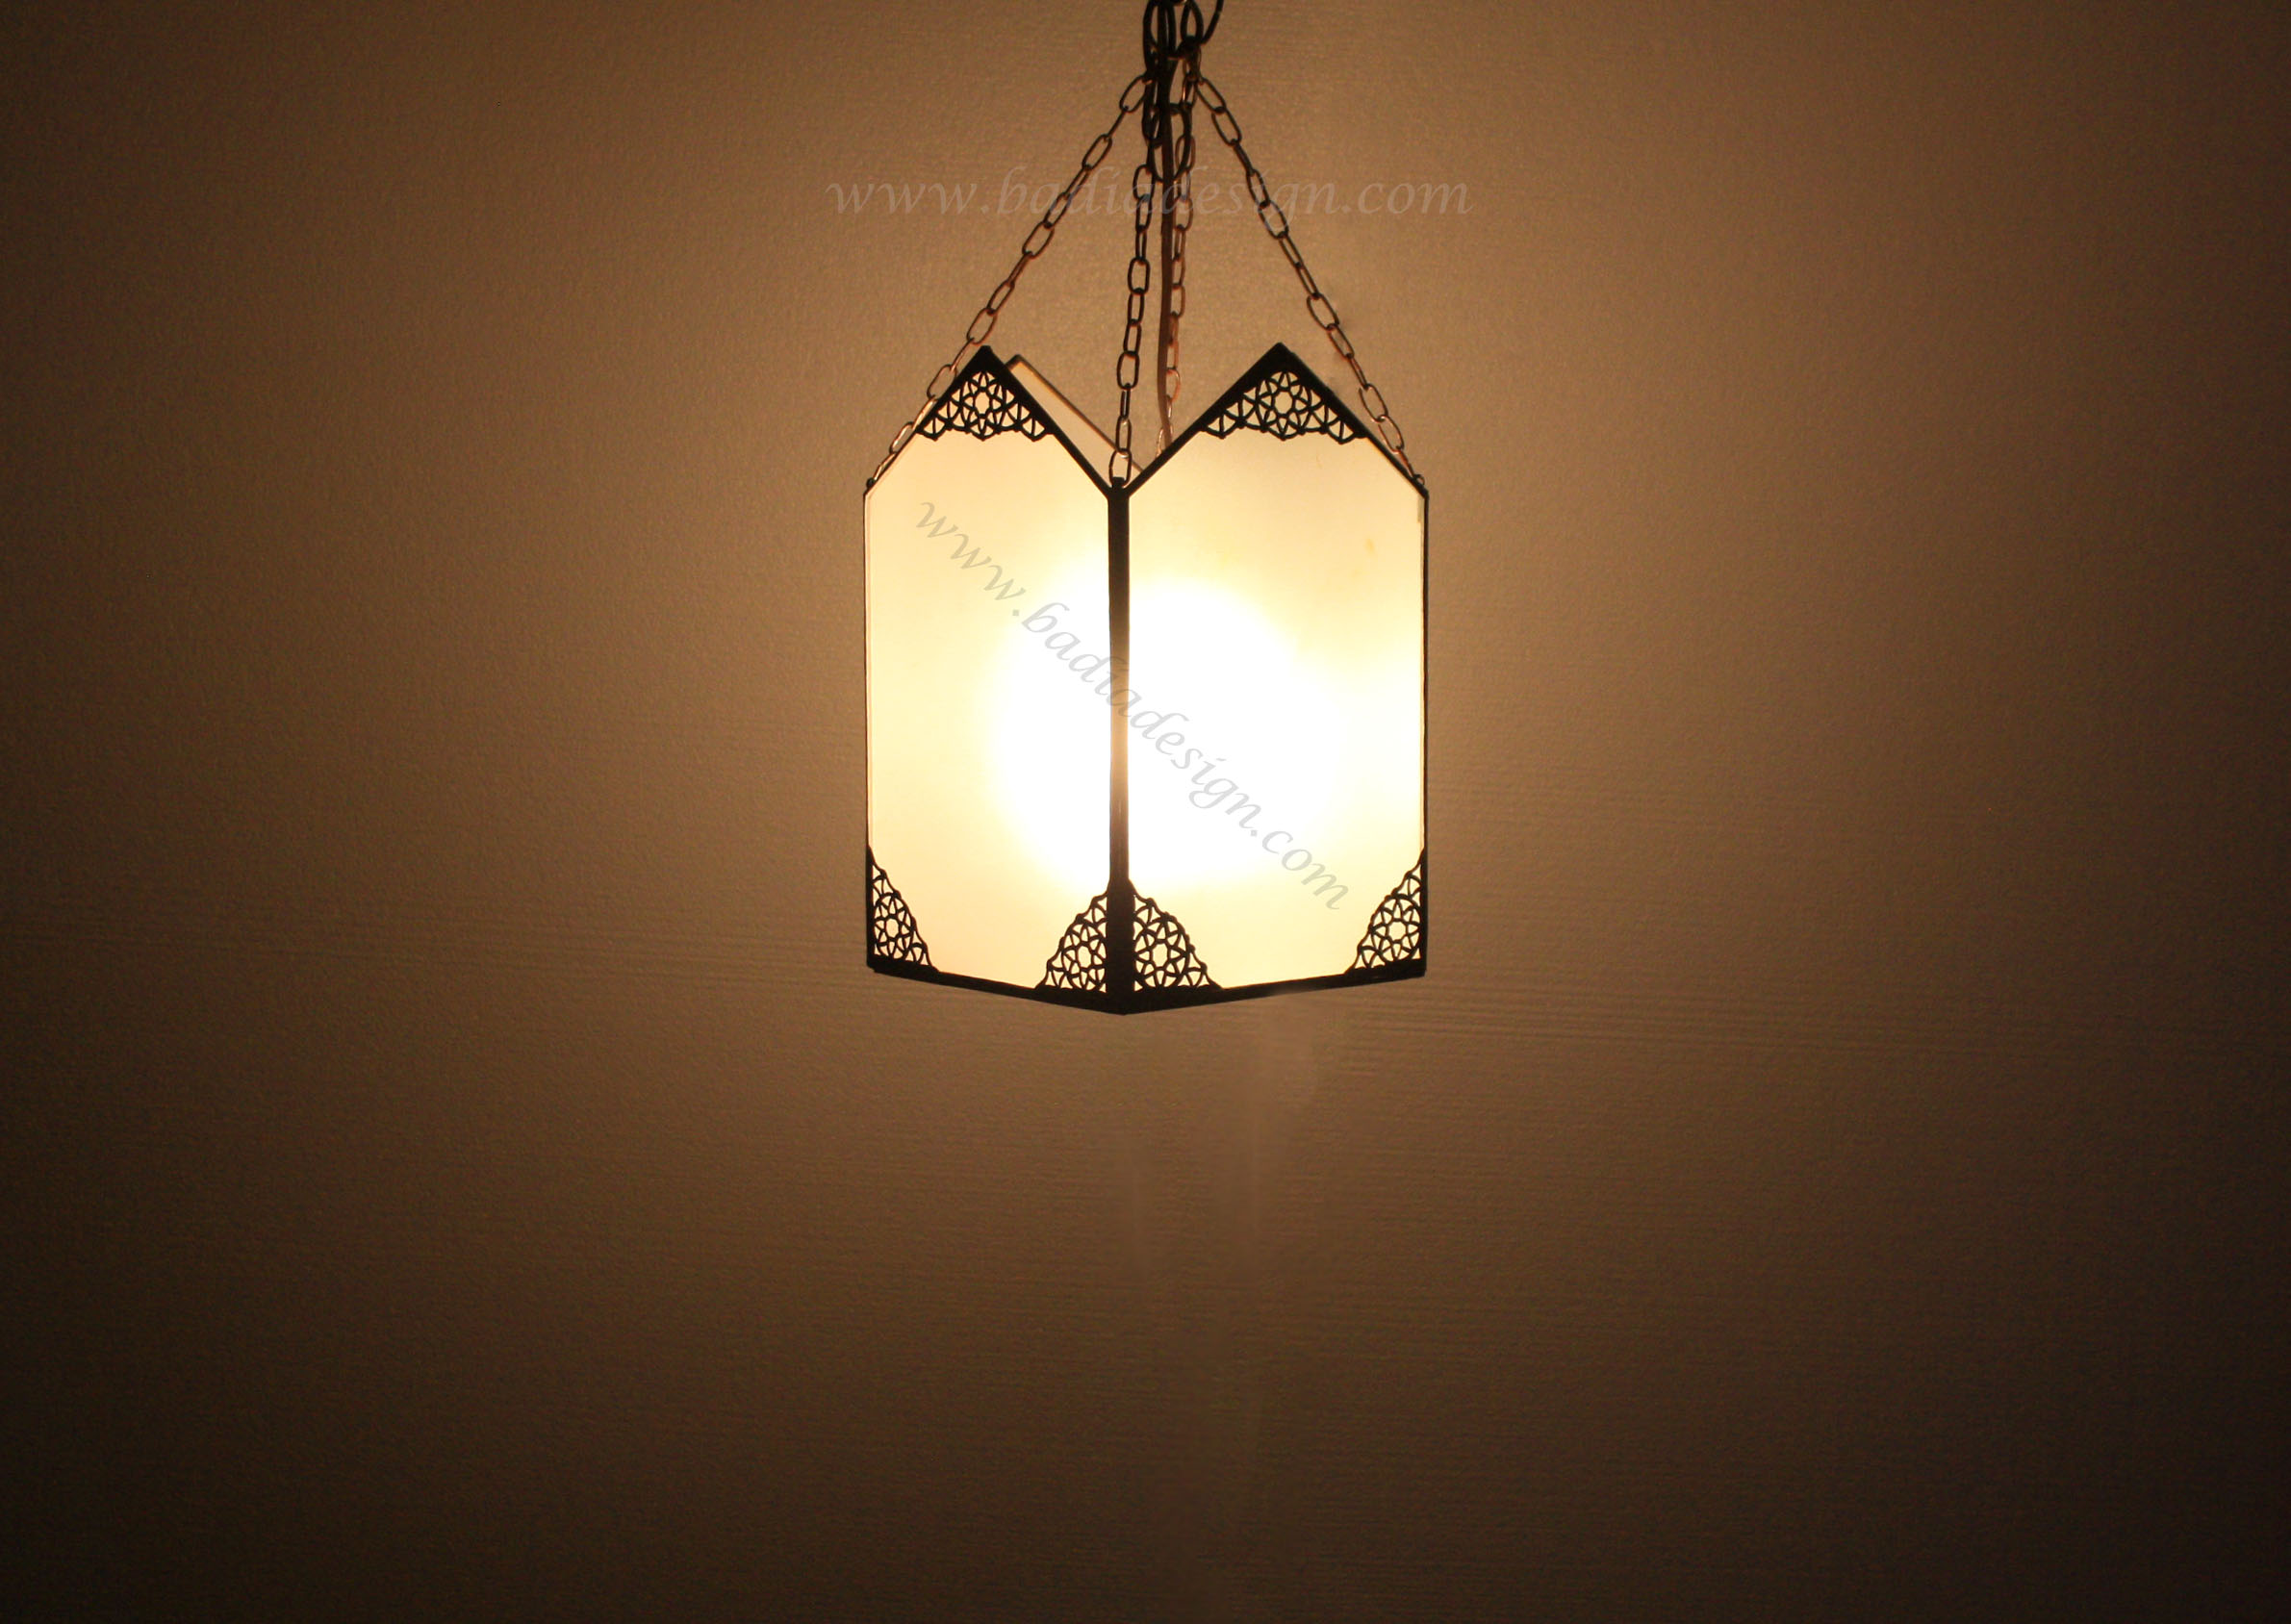 moroccan-lighting-houston.jpg